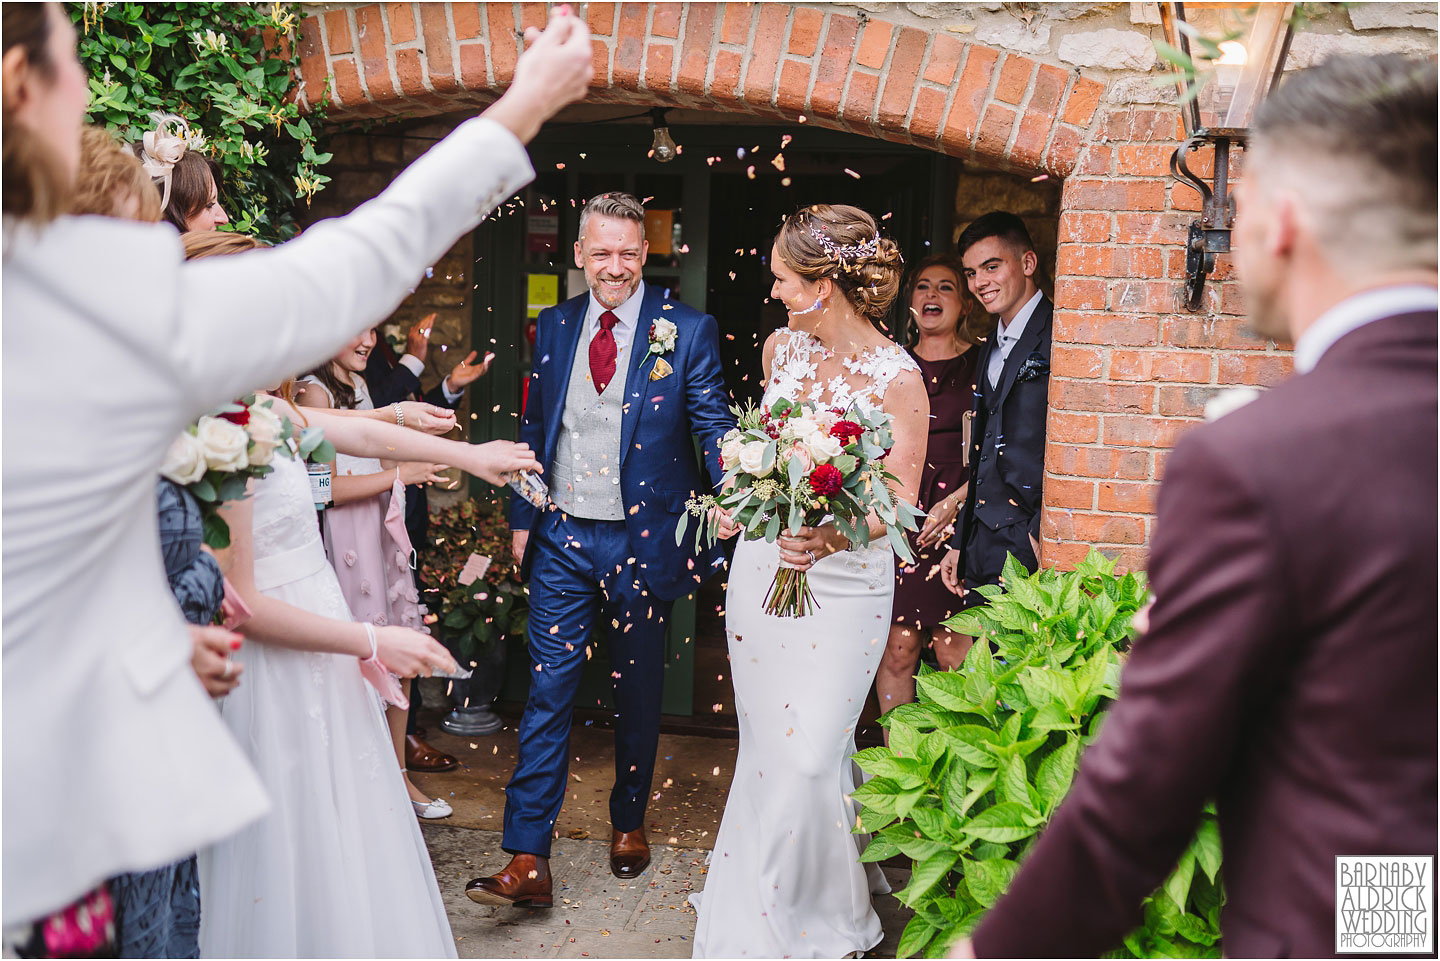 Confetti at the Pheasant, Pandemic wedding, 2020 lockdown wedding, Coronavirus wedding Yorkshire, Awesome Covid 19 wedding, Harome Wedding Photography, The Pheasant Hotel Wedding, Wedding Photography at The Pheasant Hotel North Yorkshire, North Yorkshire Wedding Photographer